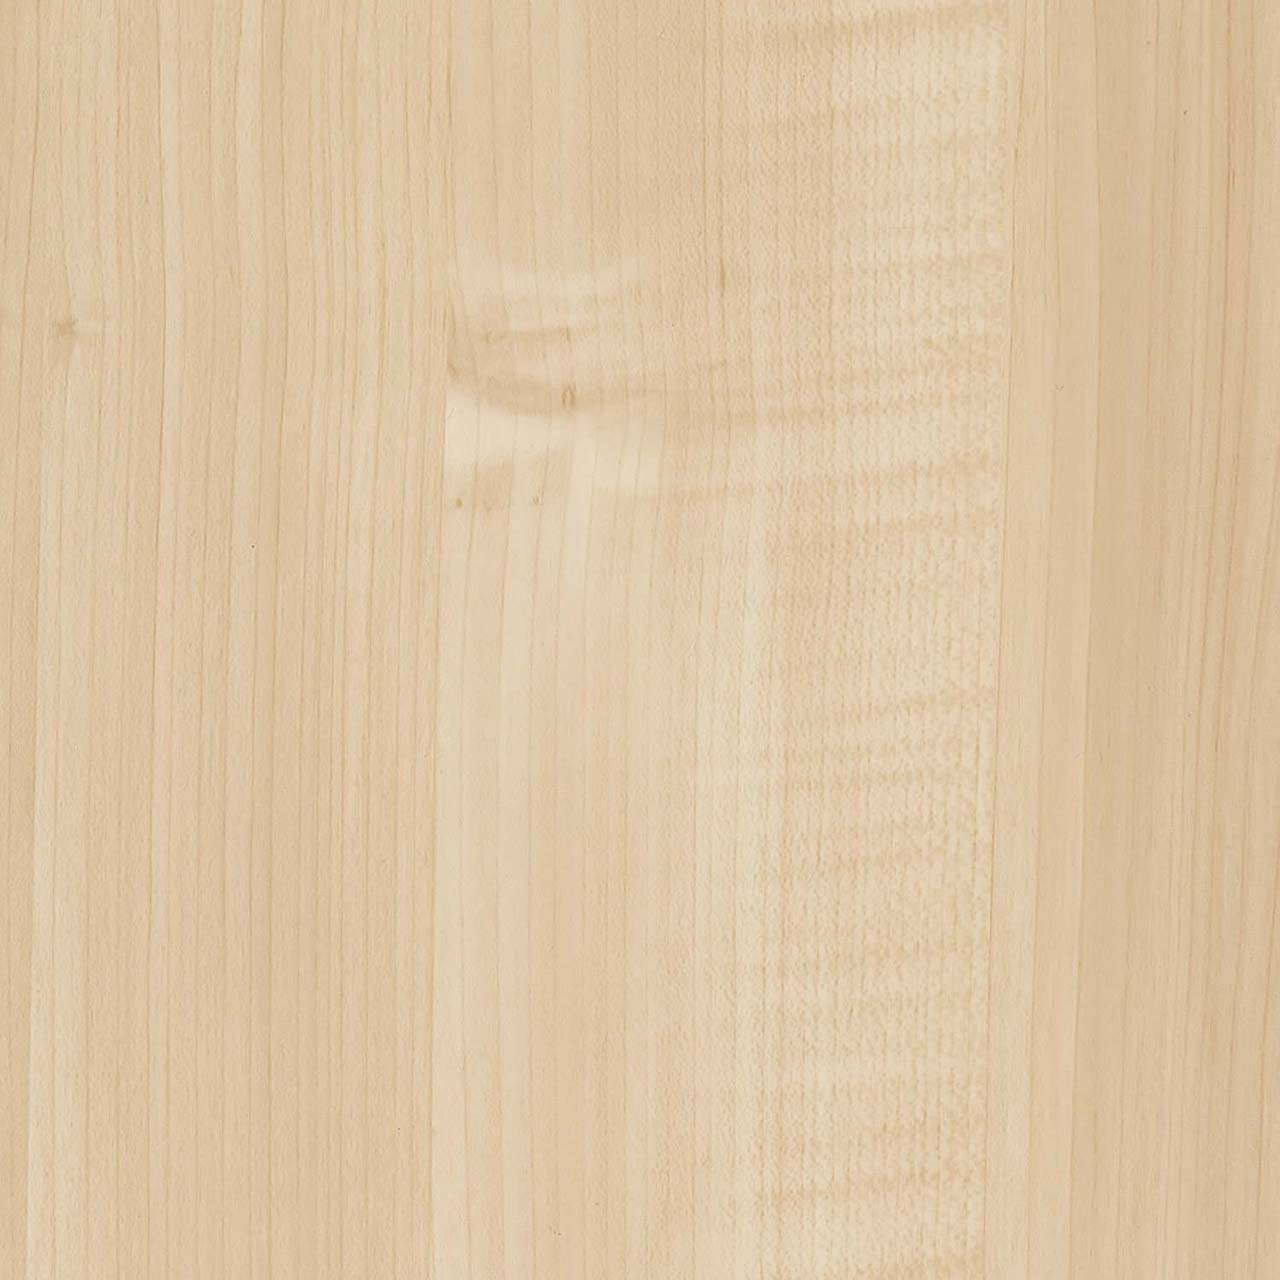 New Maple effect laminate panel